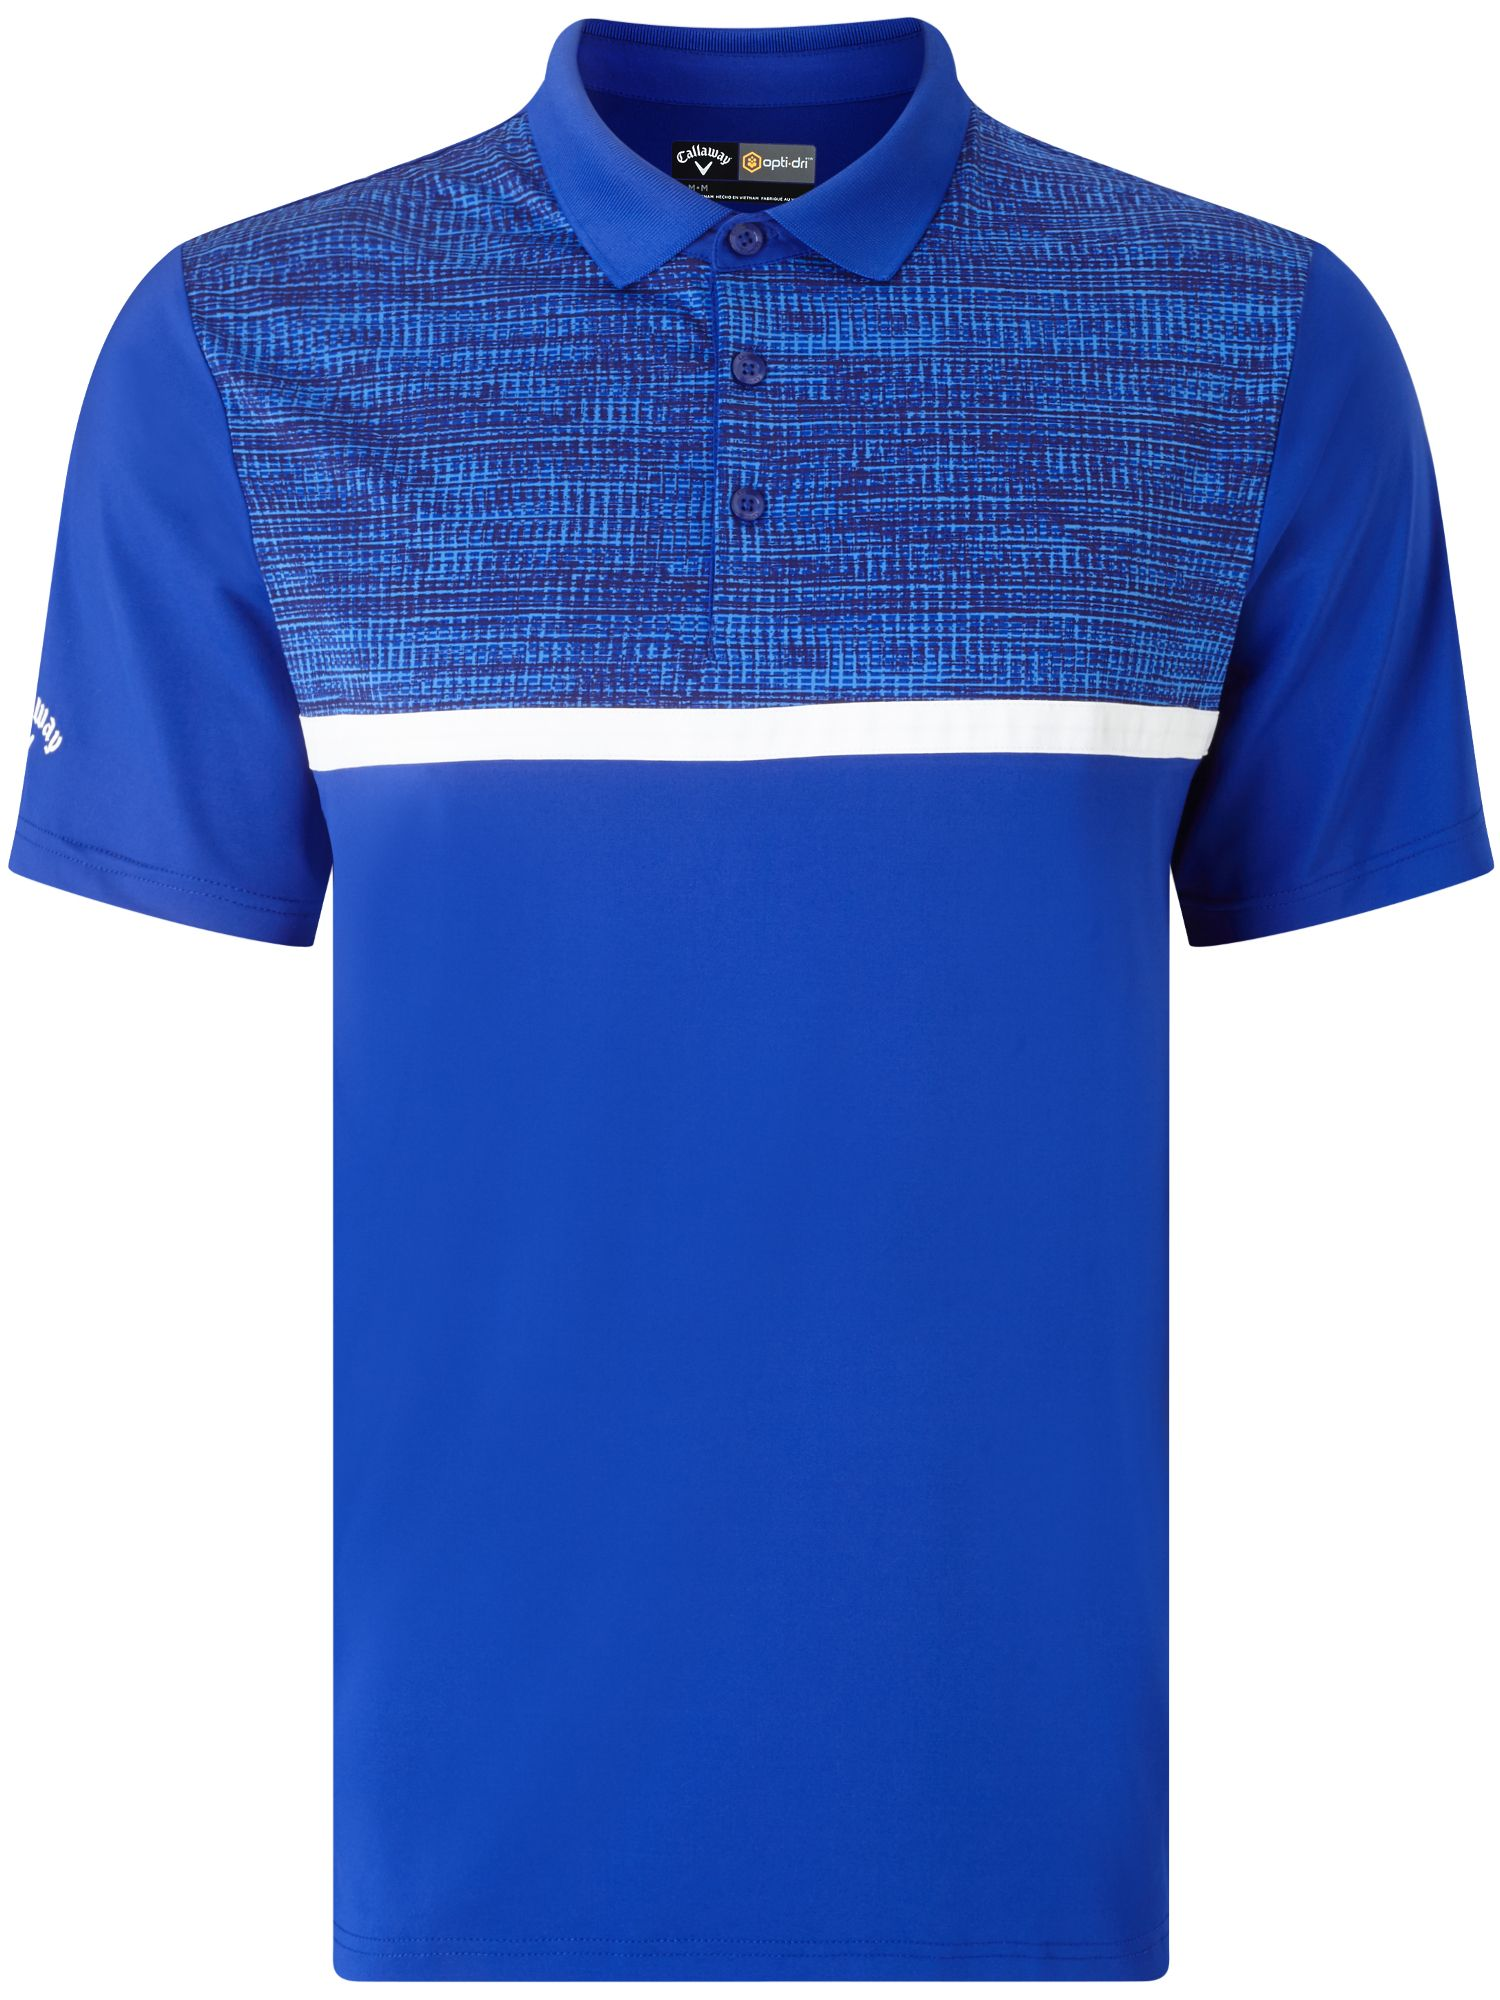 Men's Callaway Printed Block Polo, Blue